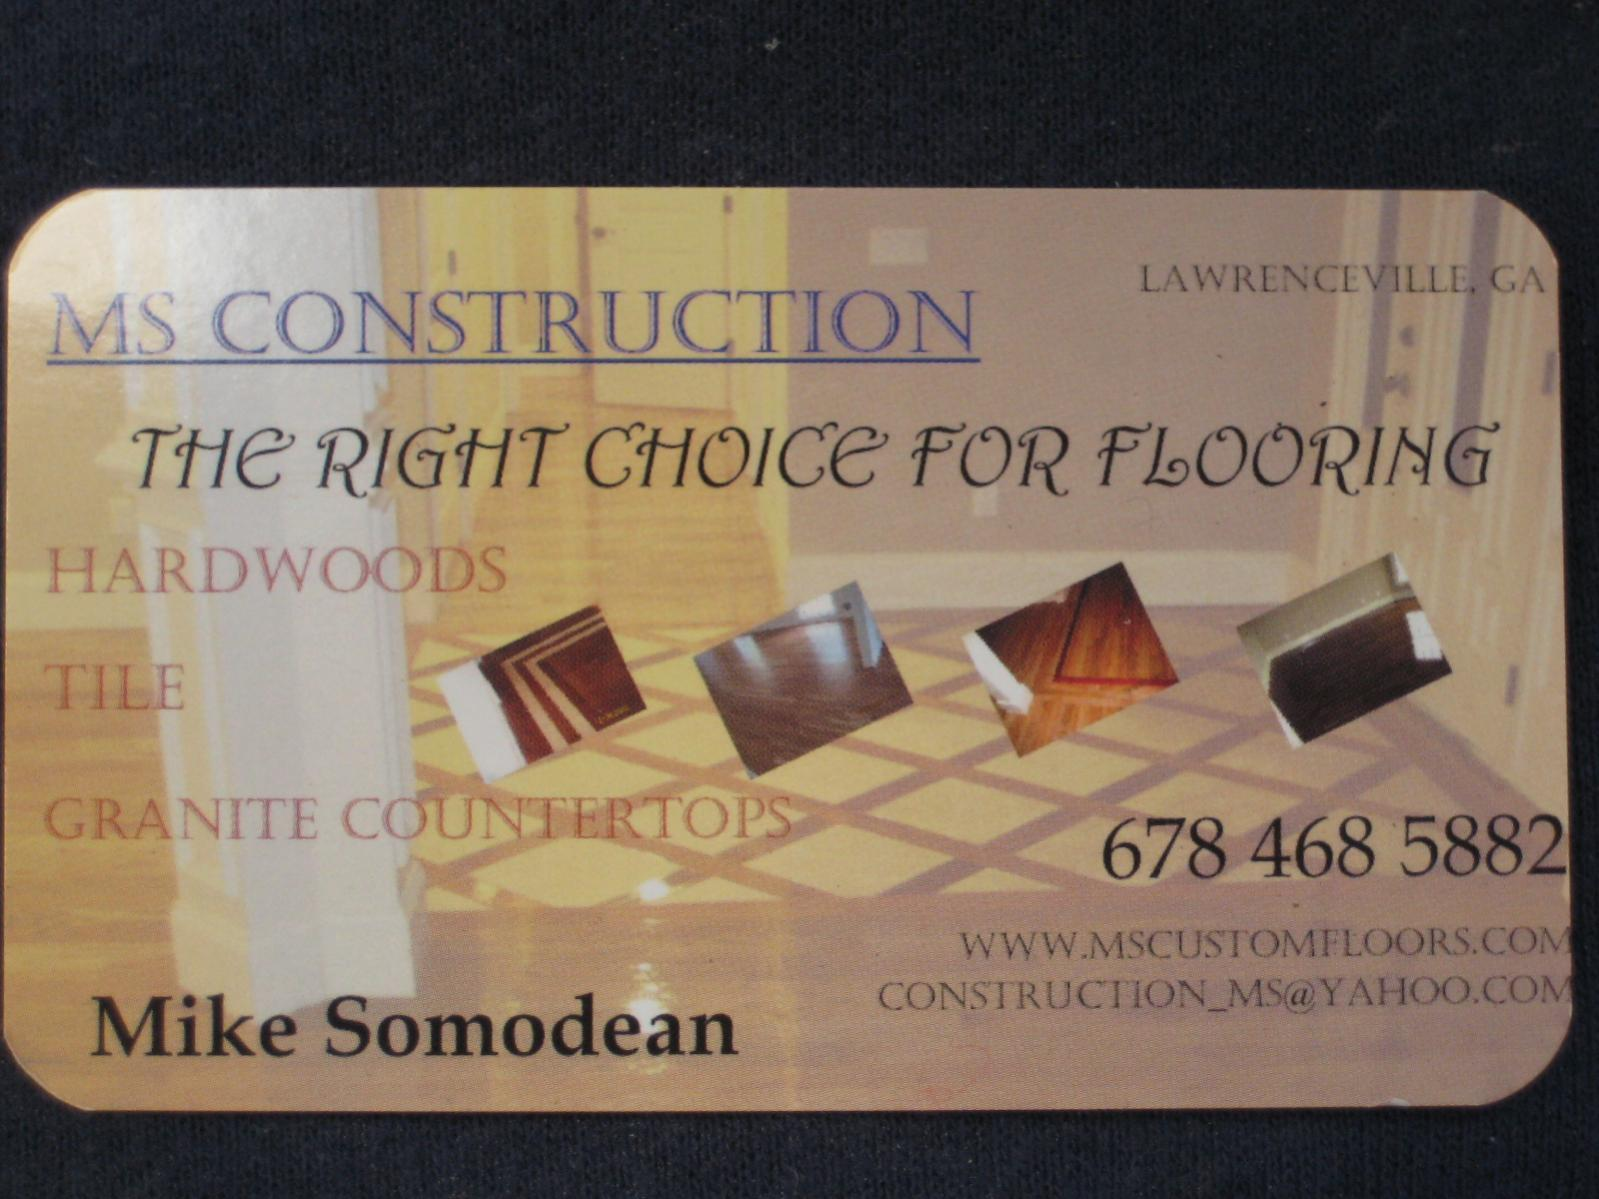 Good Place To Find Business Cards - Page 2 - Flooring - Contractor Talk